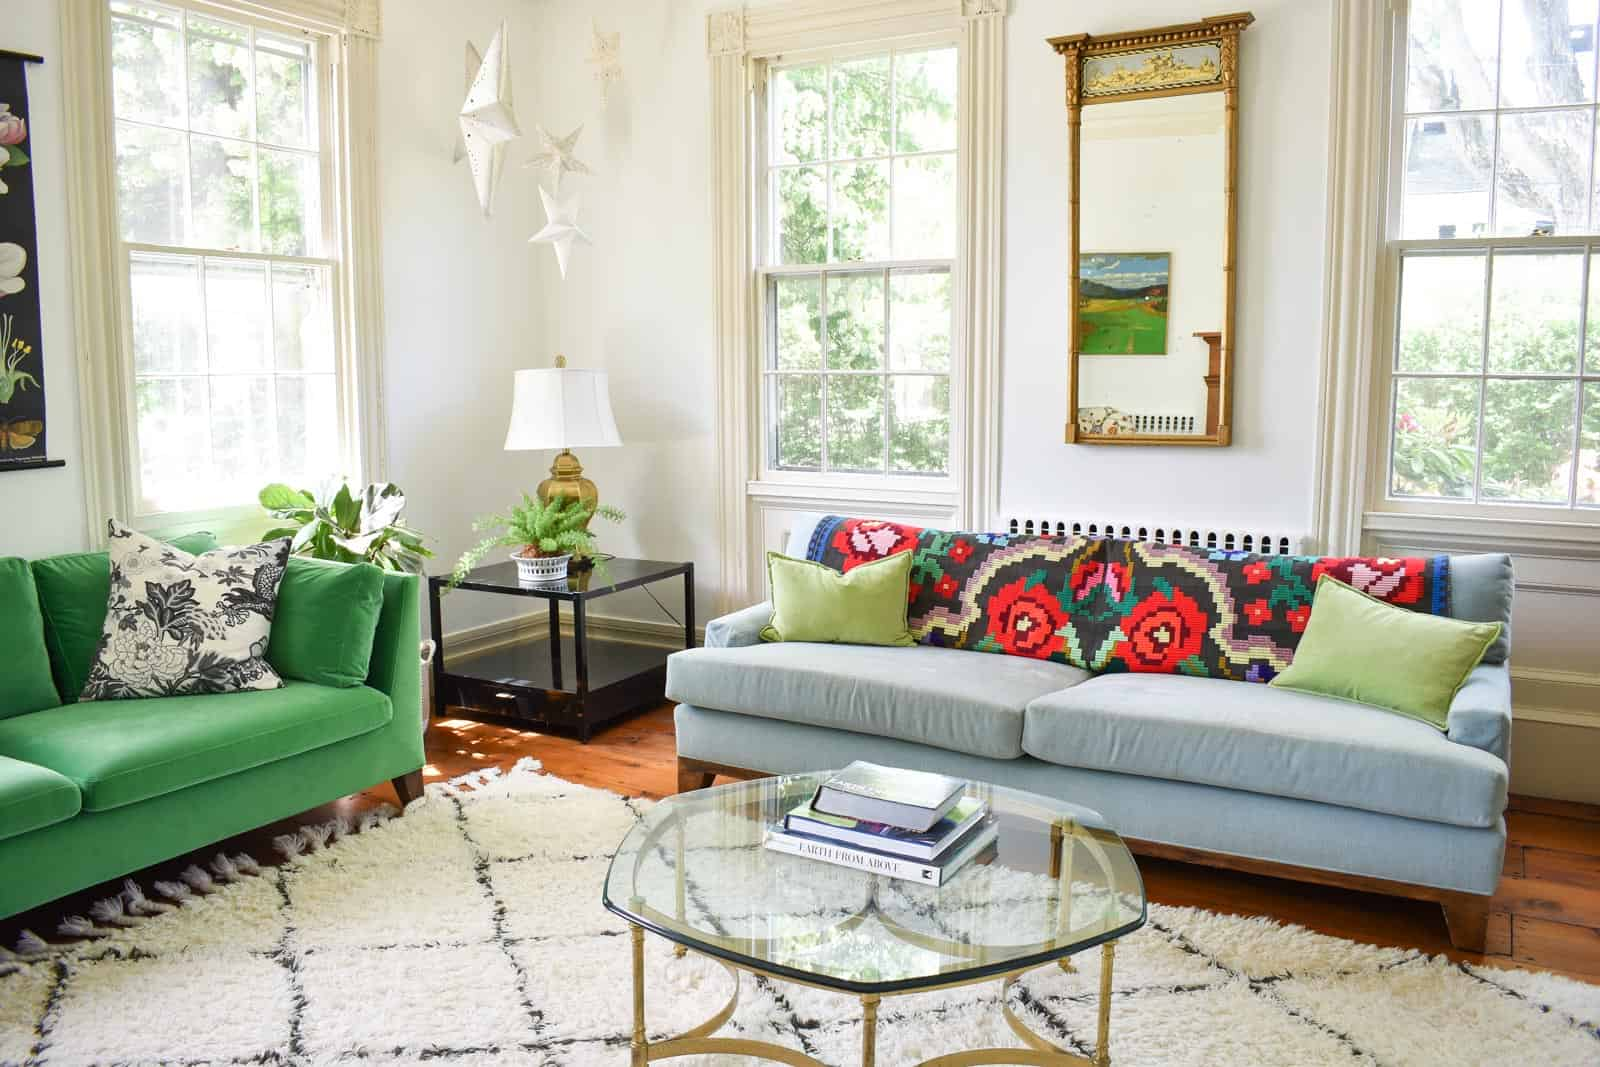 how to get out of a room rut with family furniture